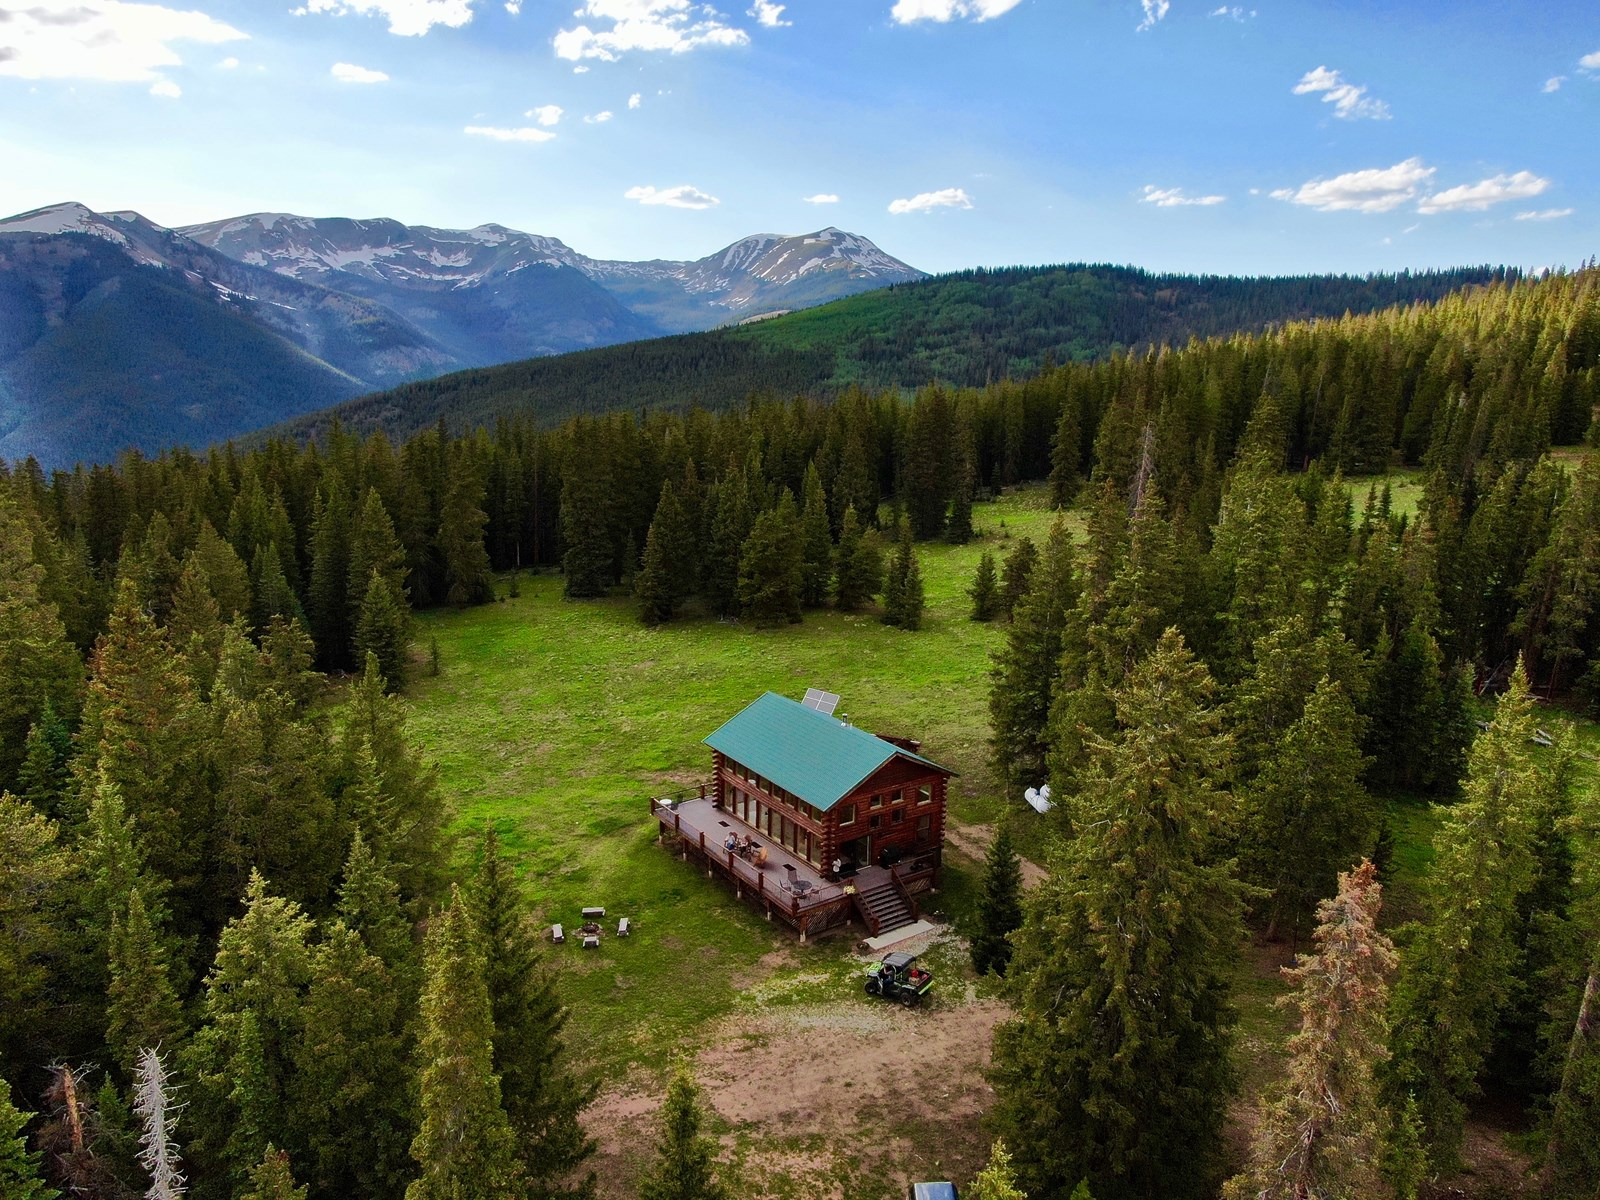 Pitkin Colorado cabin for sale